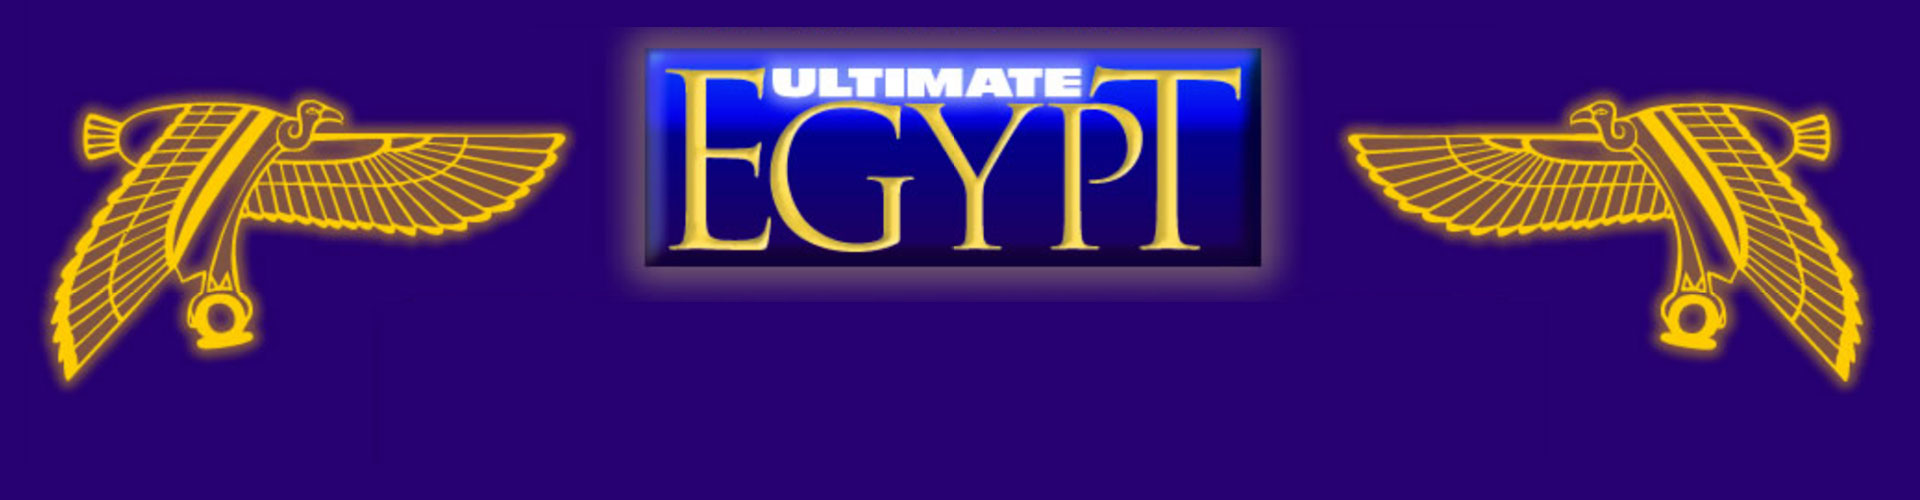 welcome to Ultimate Egypt